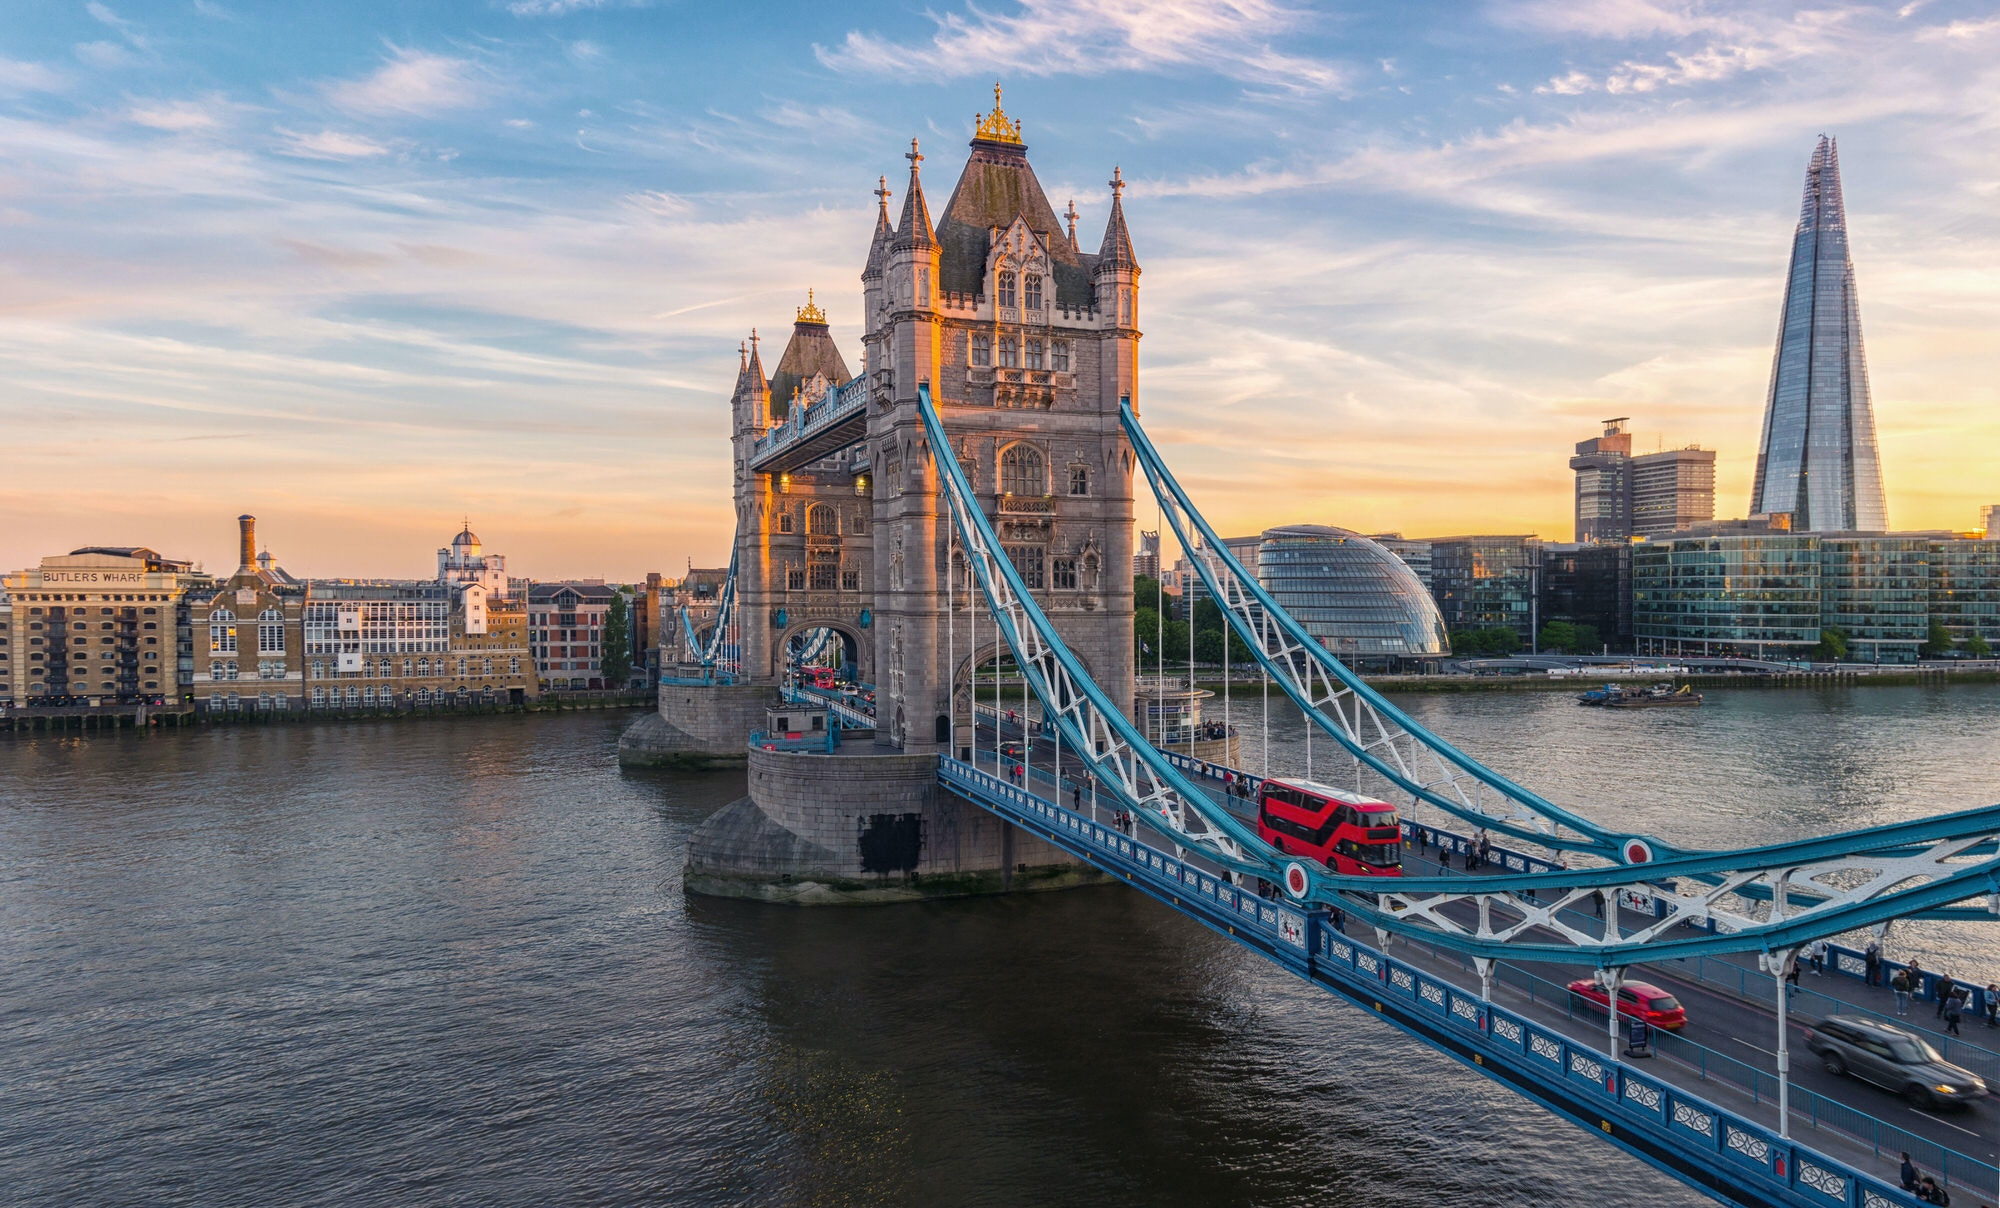 Traffic passes on Tower Bridge in London during sunset © r.classen / Shutterstock